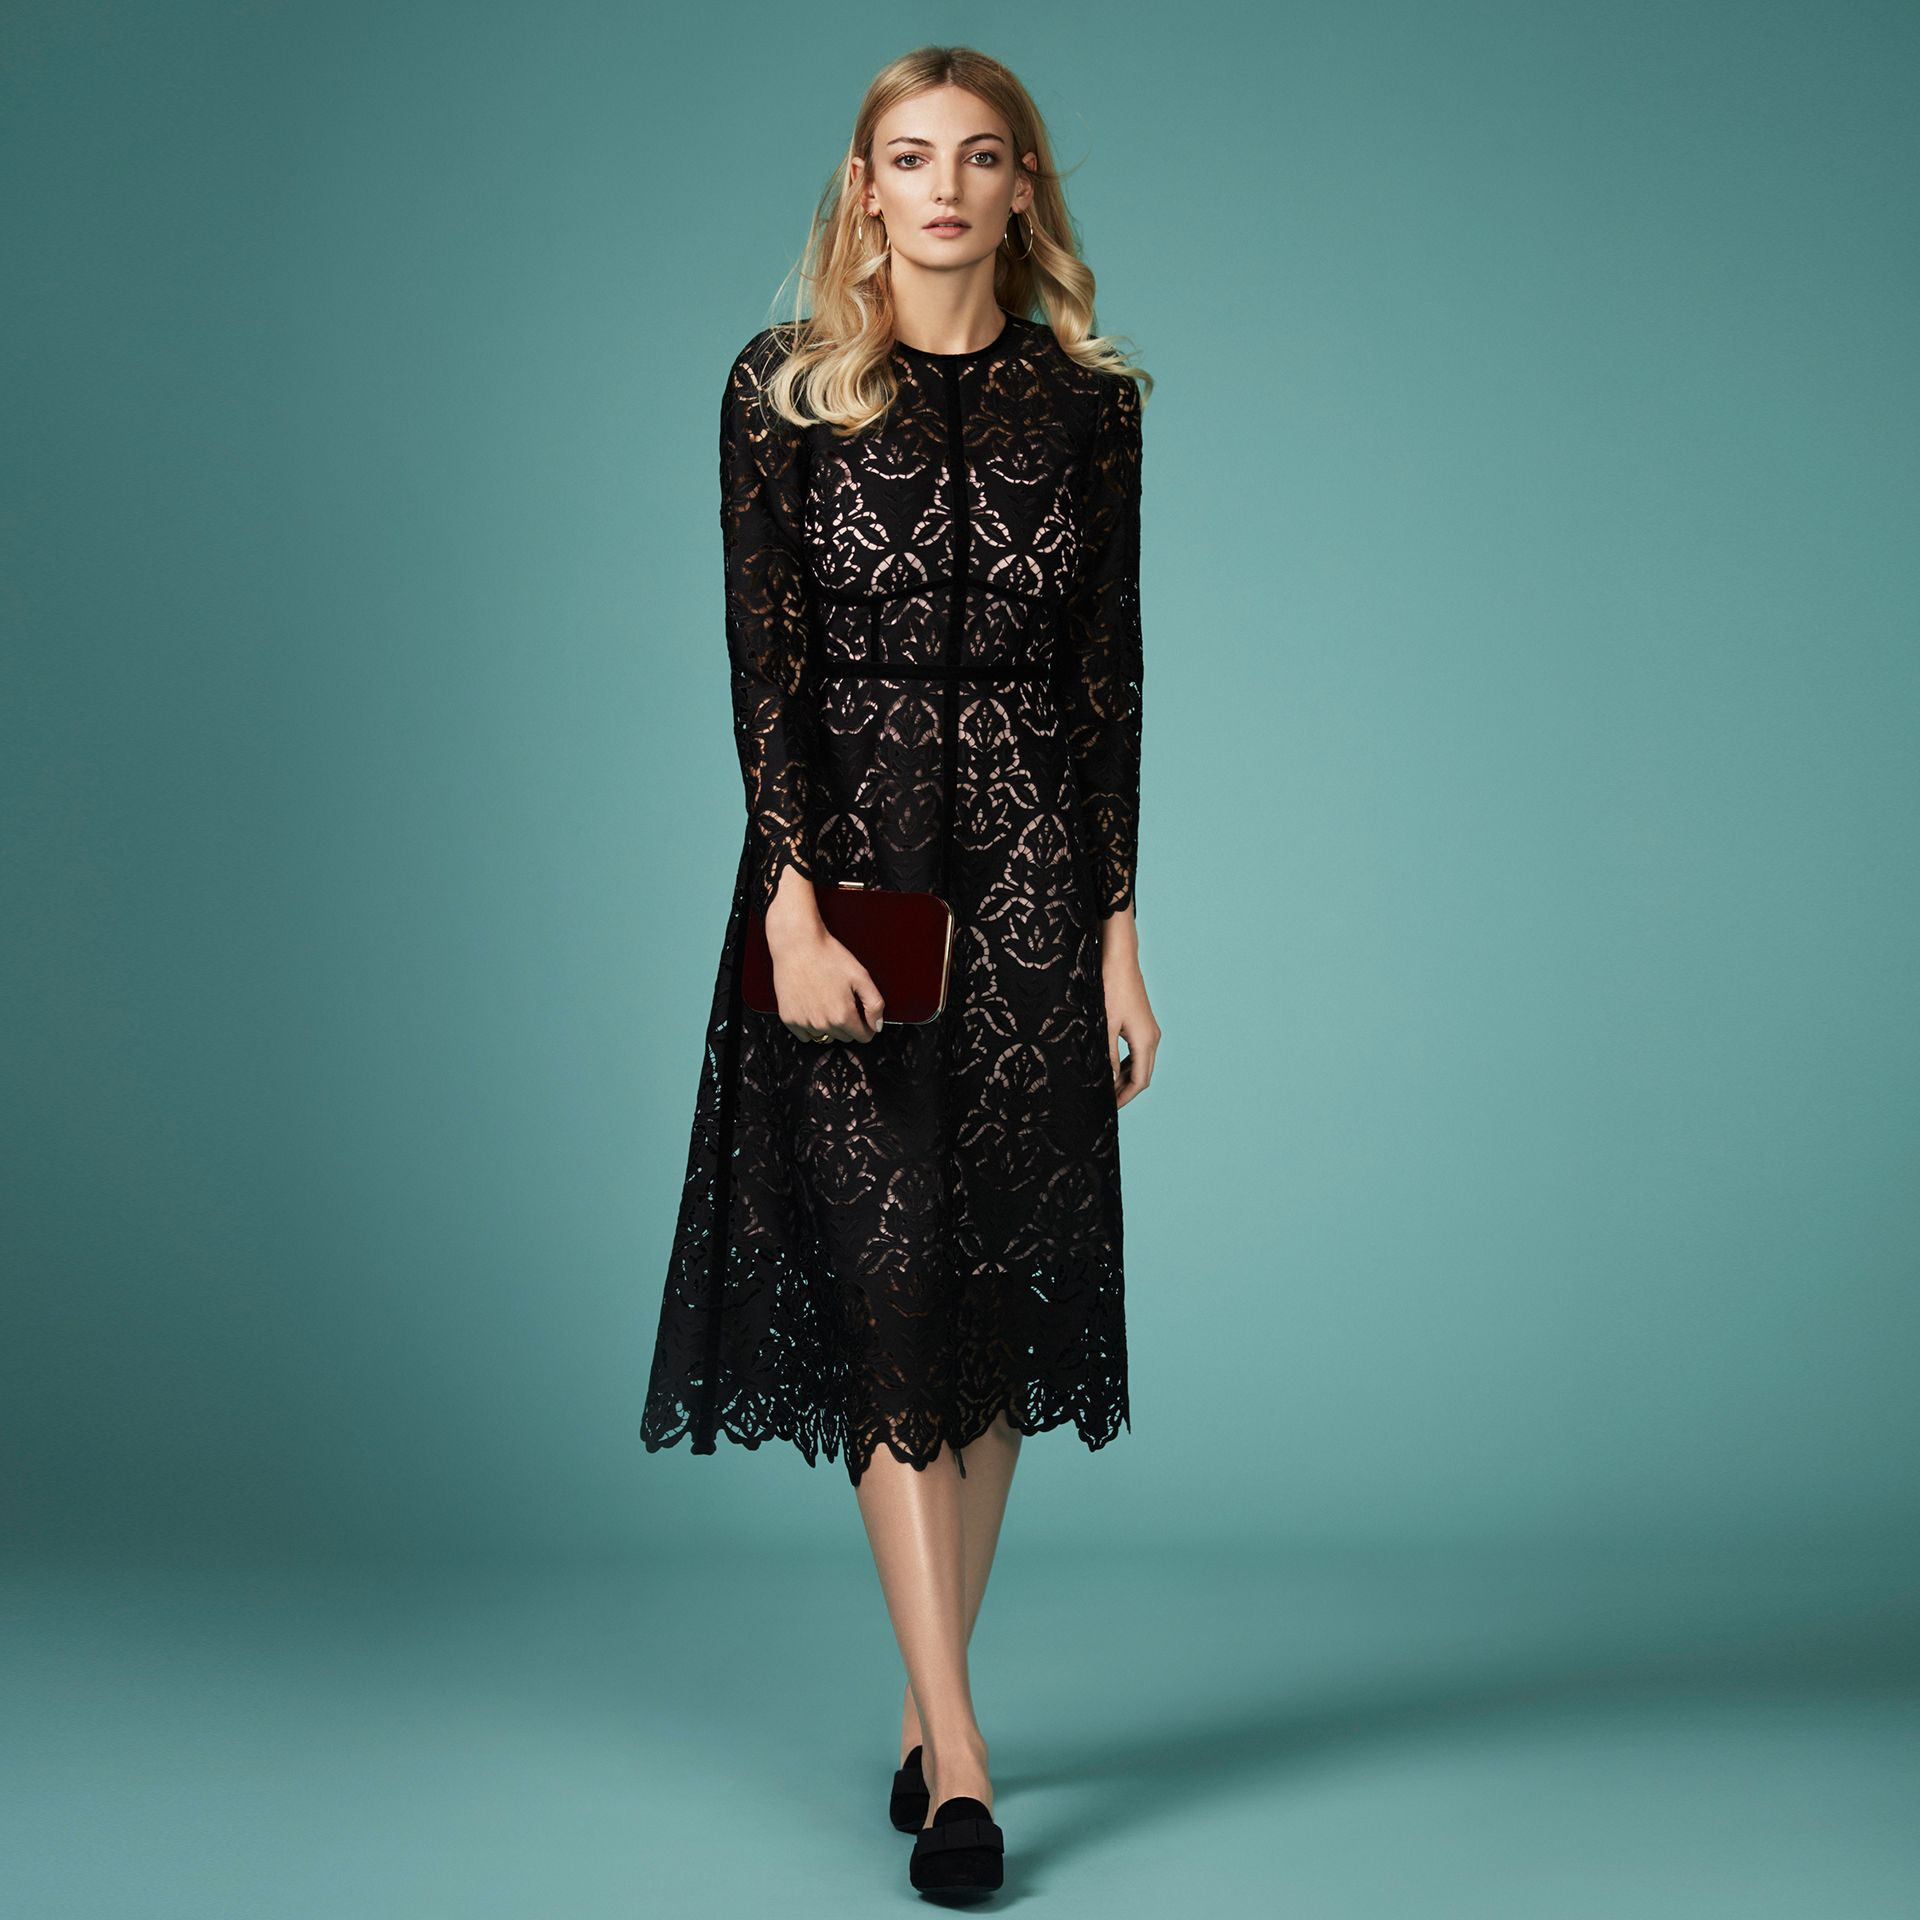 L.K. Bennett Elouise Lace Dress, £425